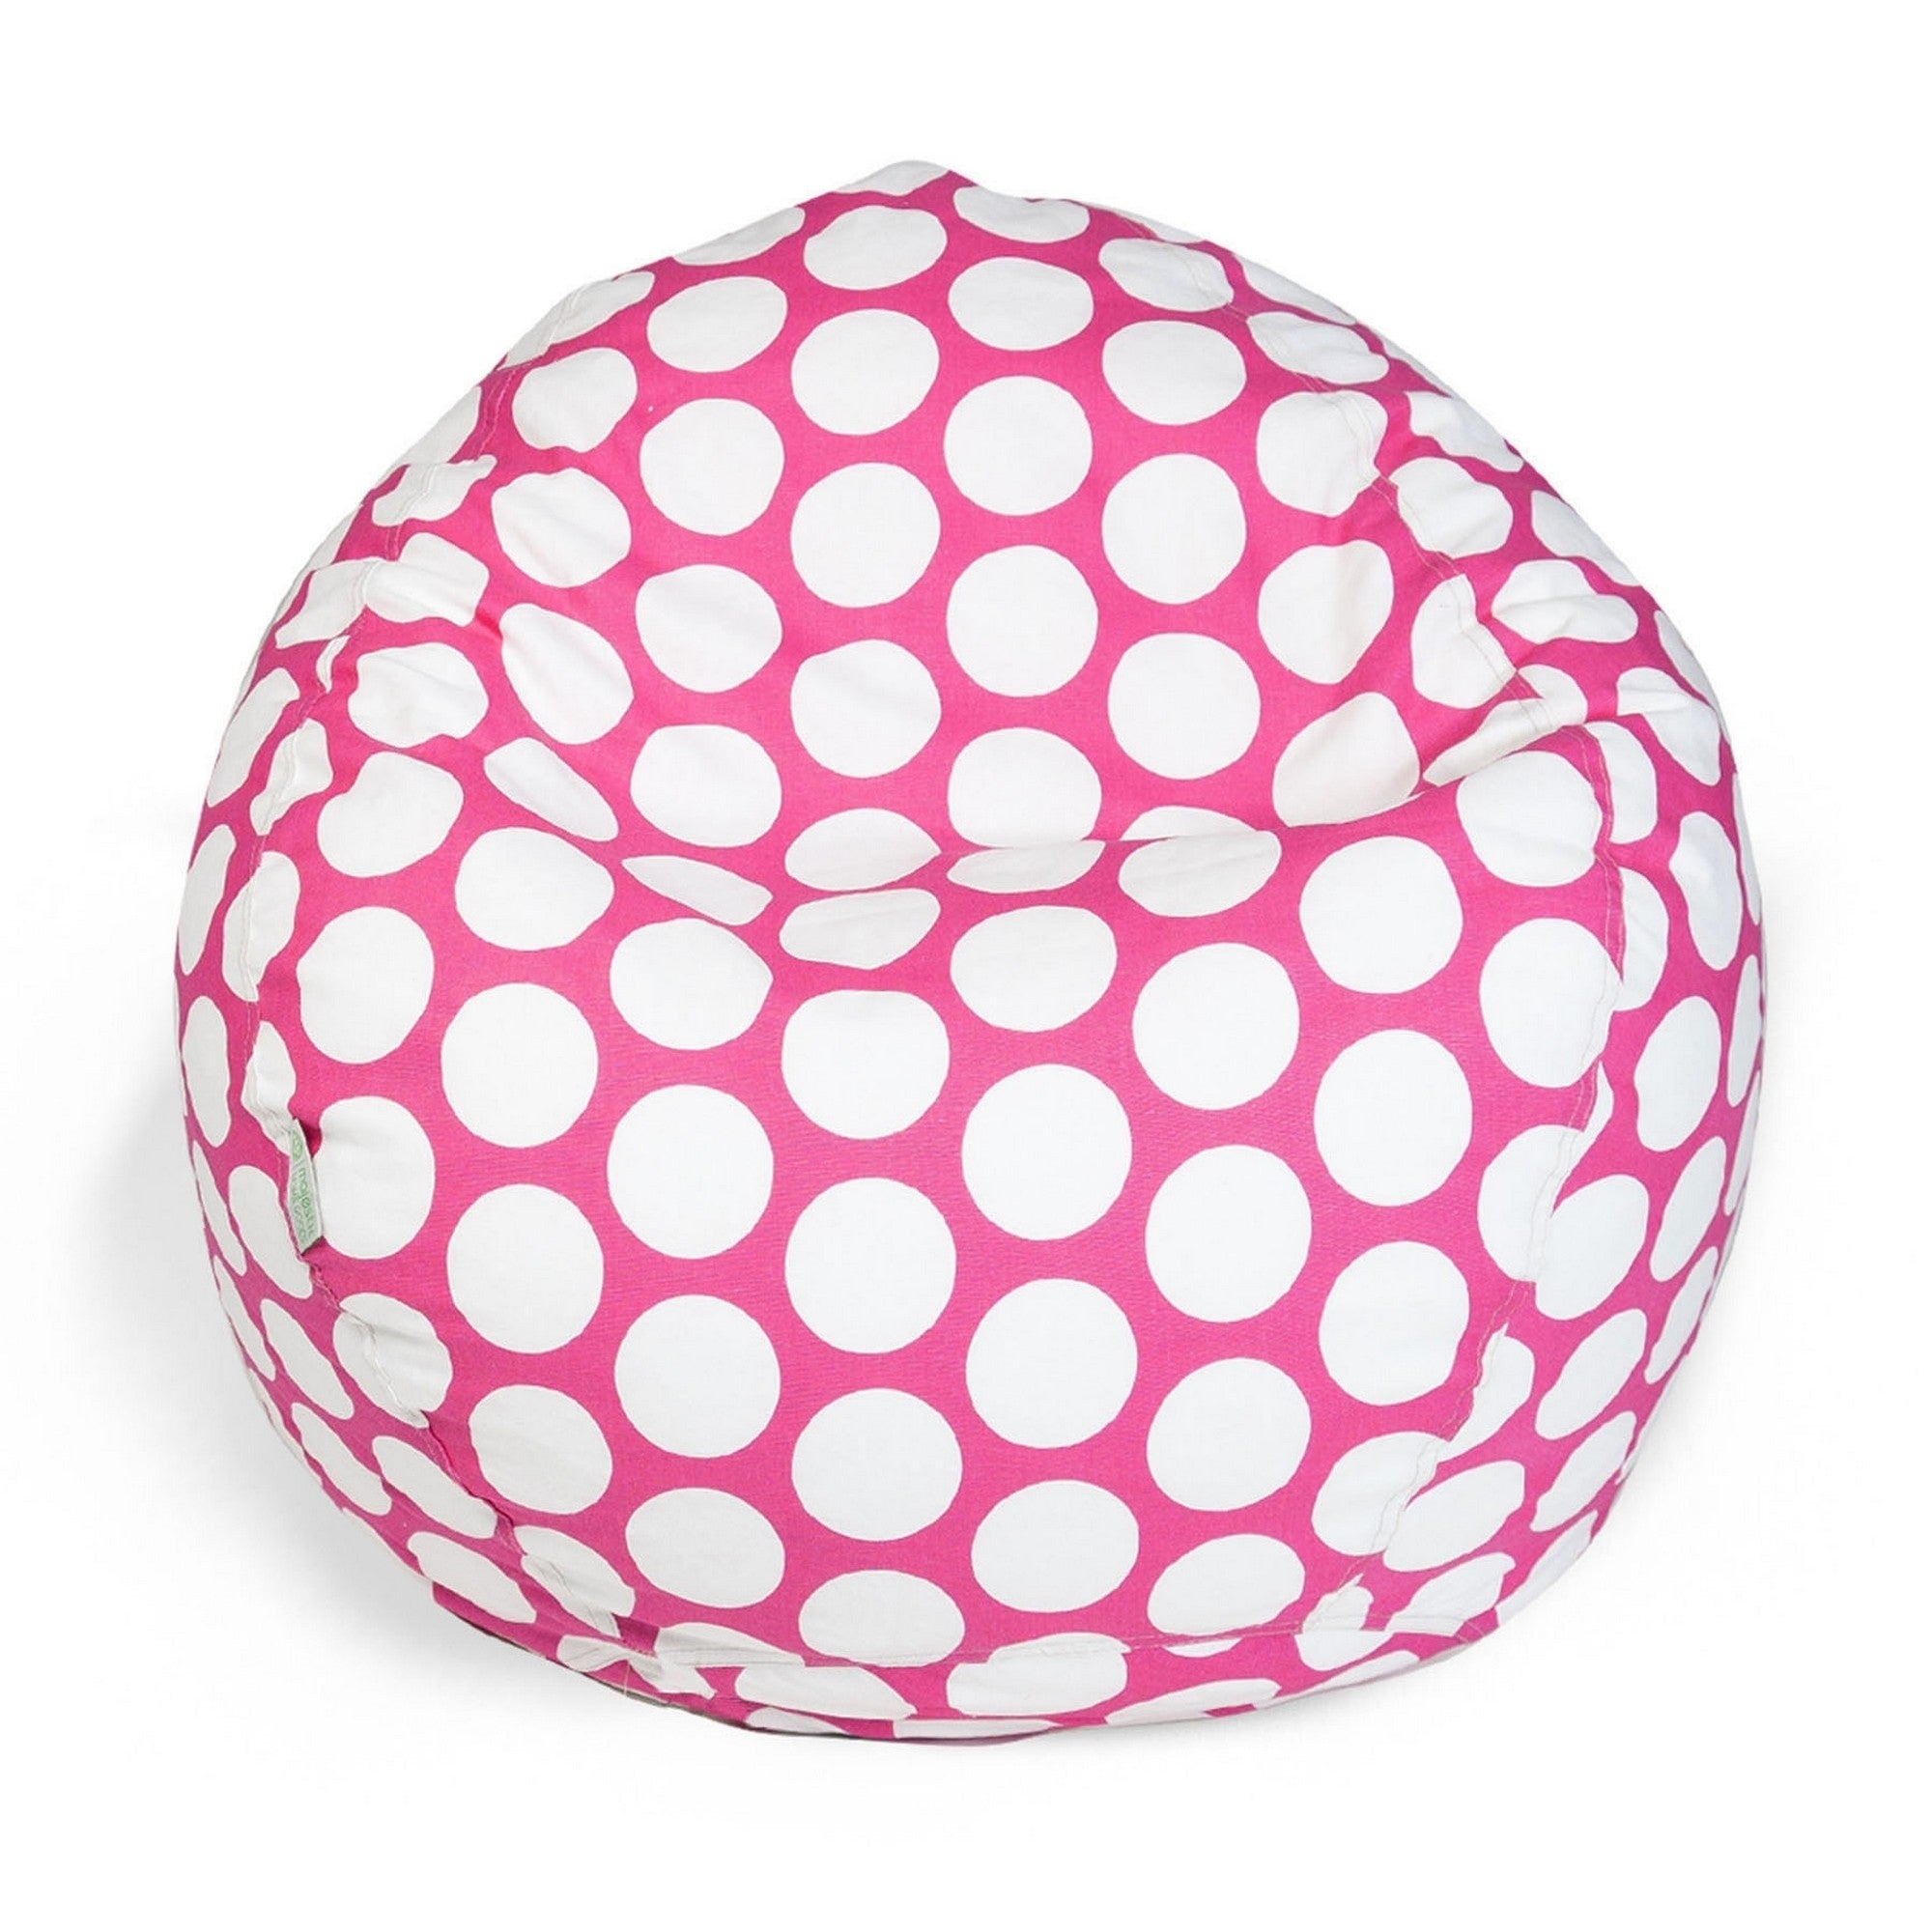 Admirable Majestic Home Goods Large Polka Dot Classic Bean Bag Chair Small Large Alphanode Cool Chair Designs And Ideas Alphanodeonline